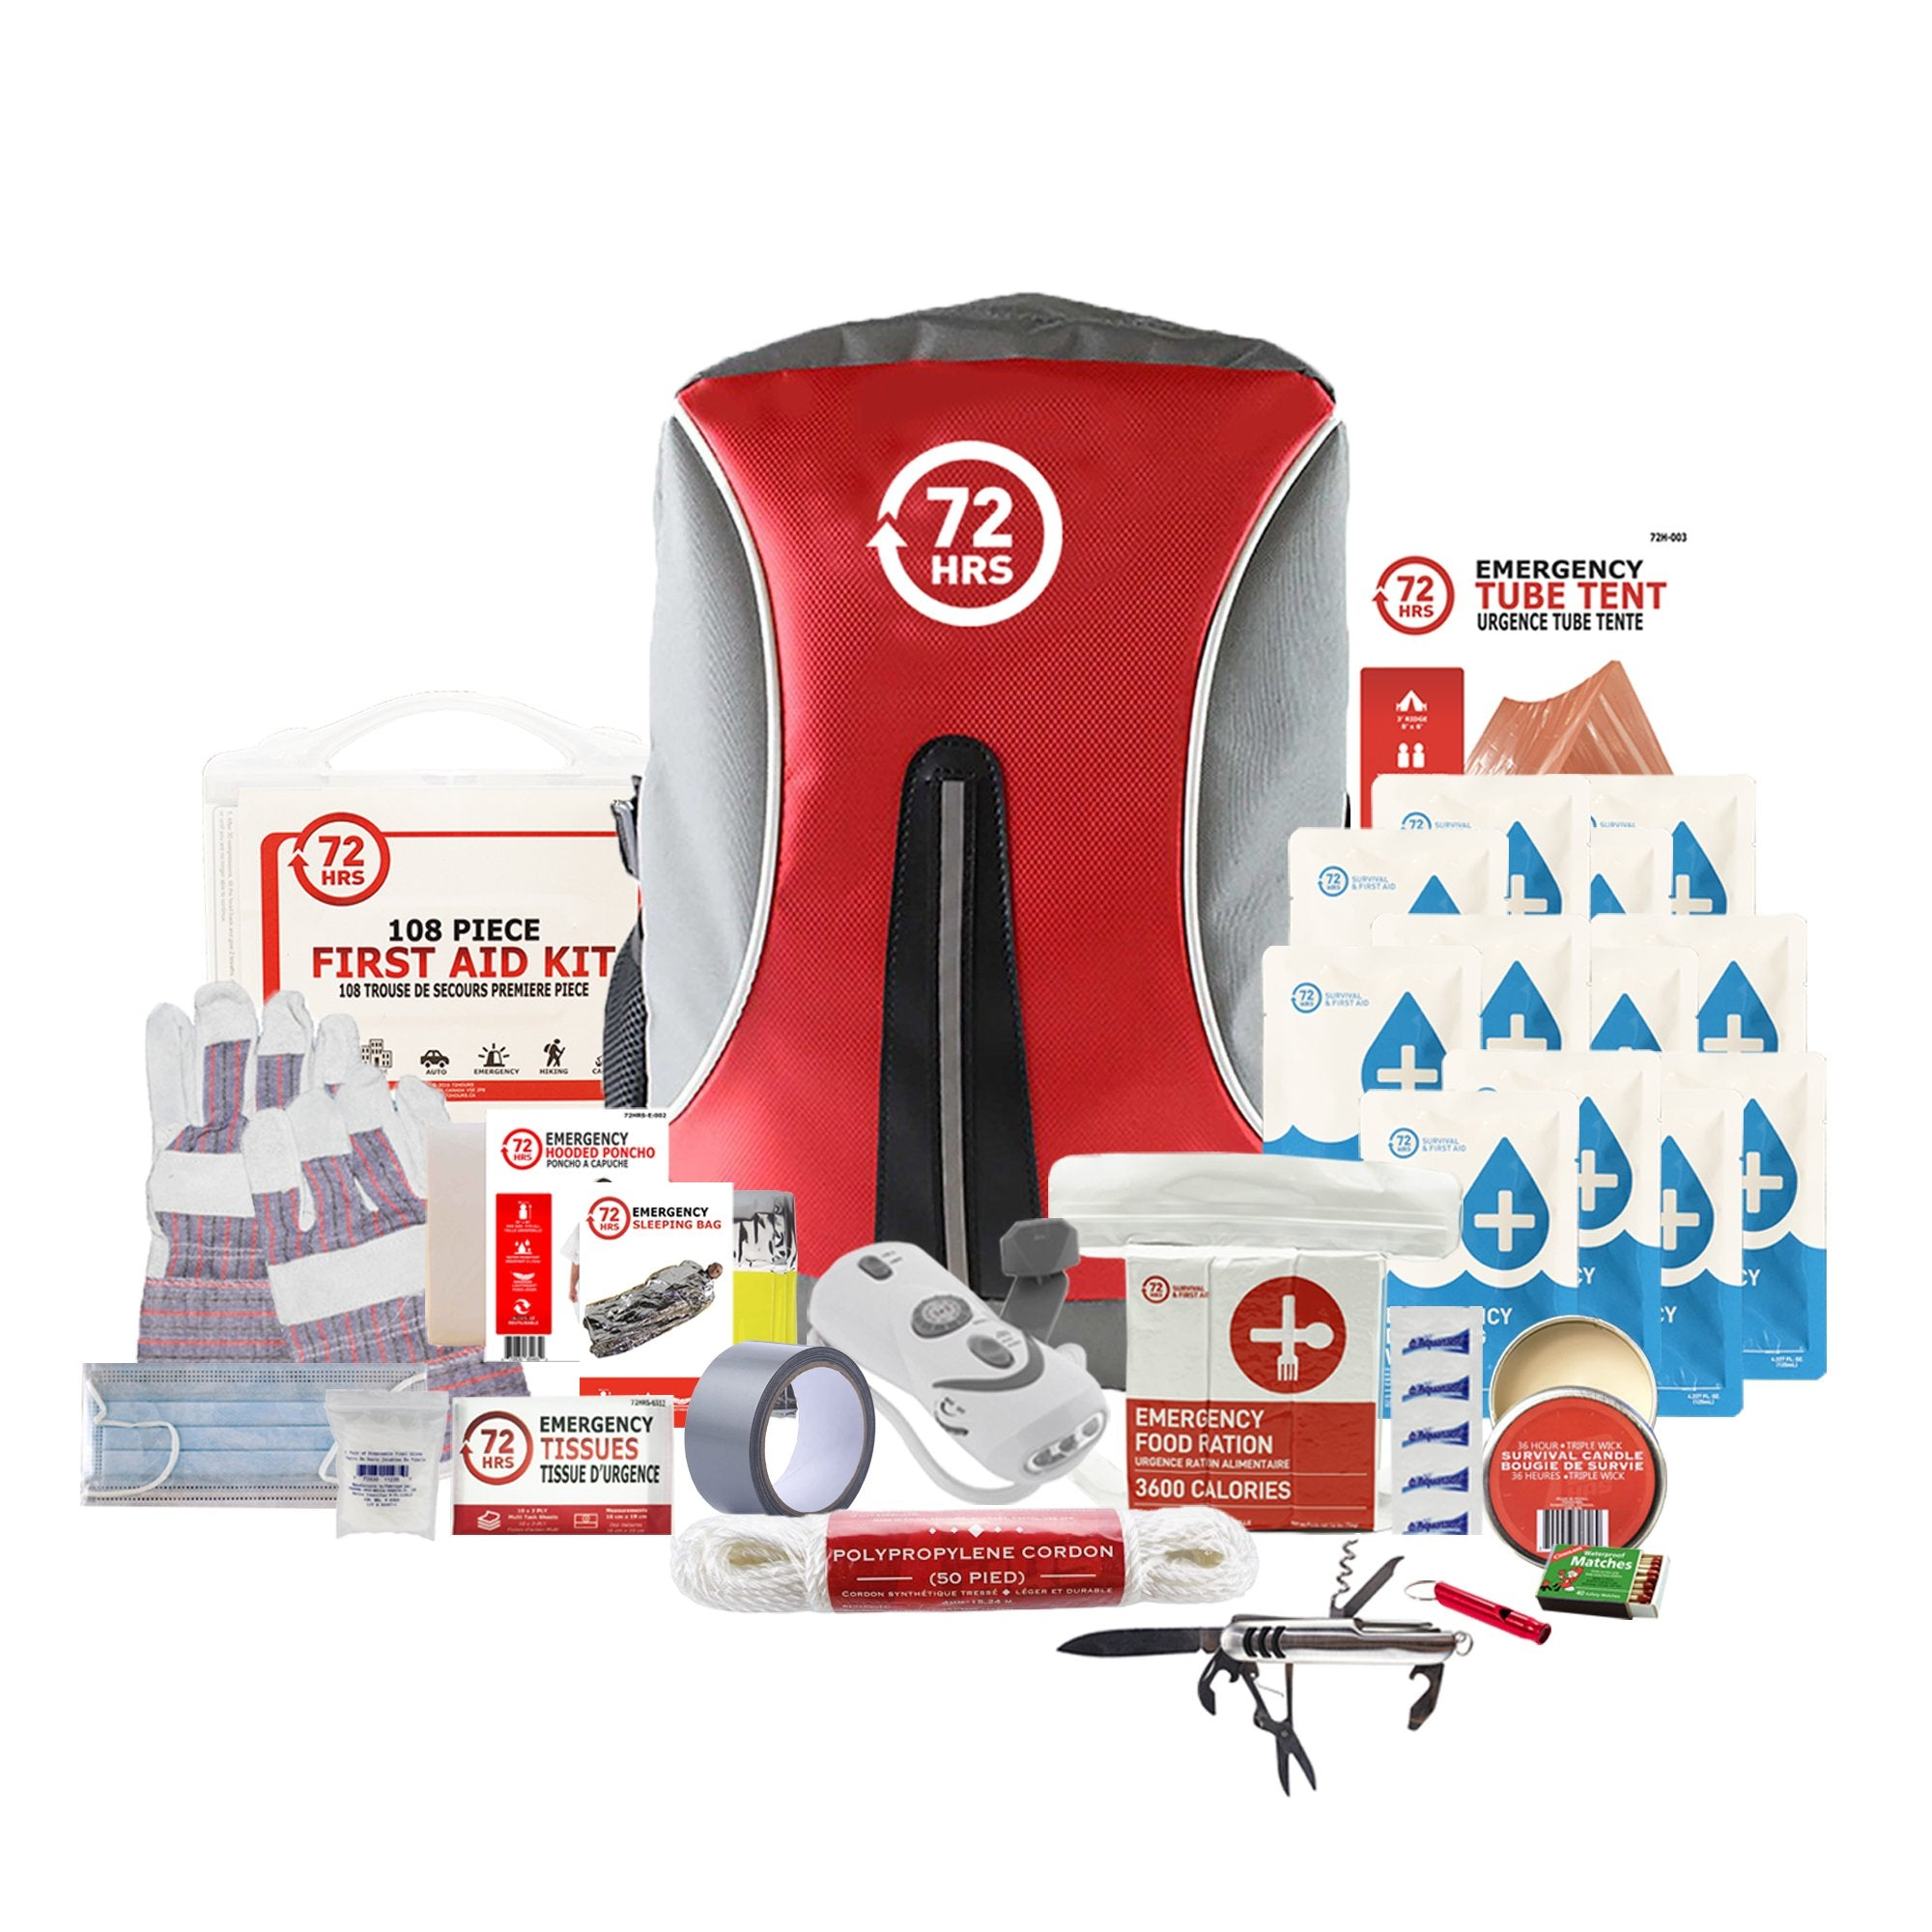 1 Person 72HRS Deluxe Backpack - Emergency Survival Kit